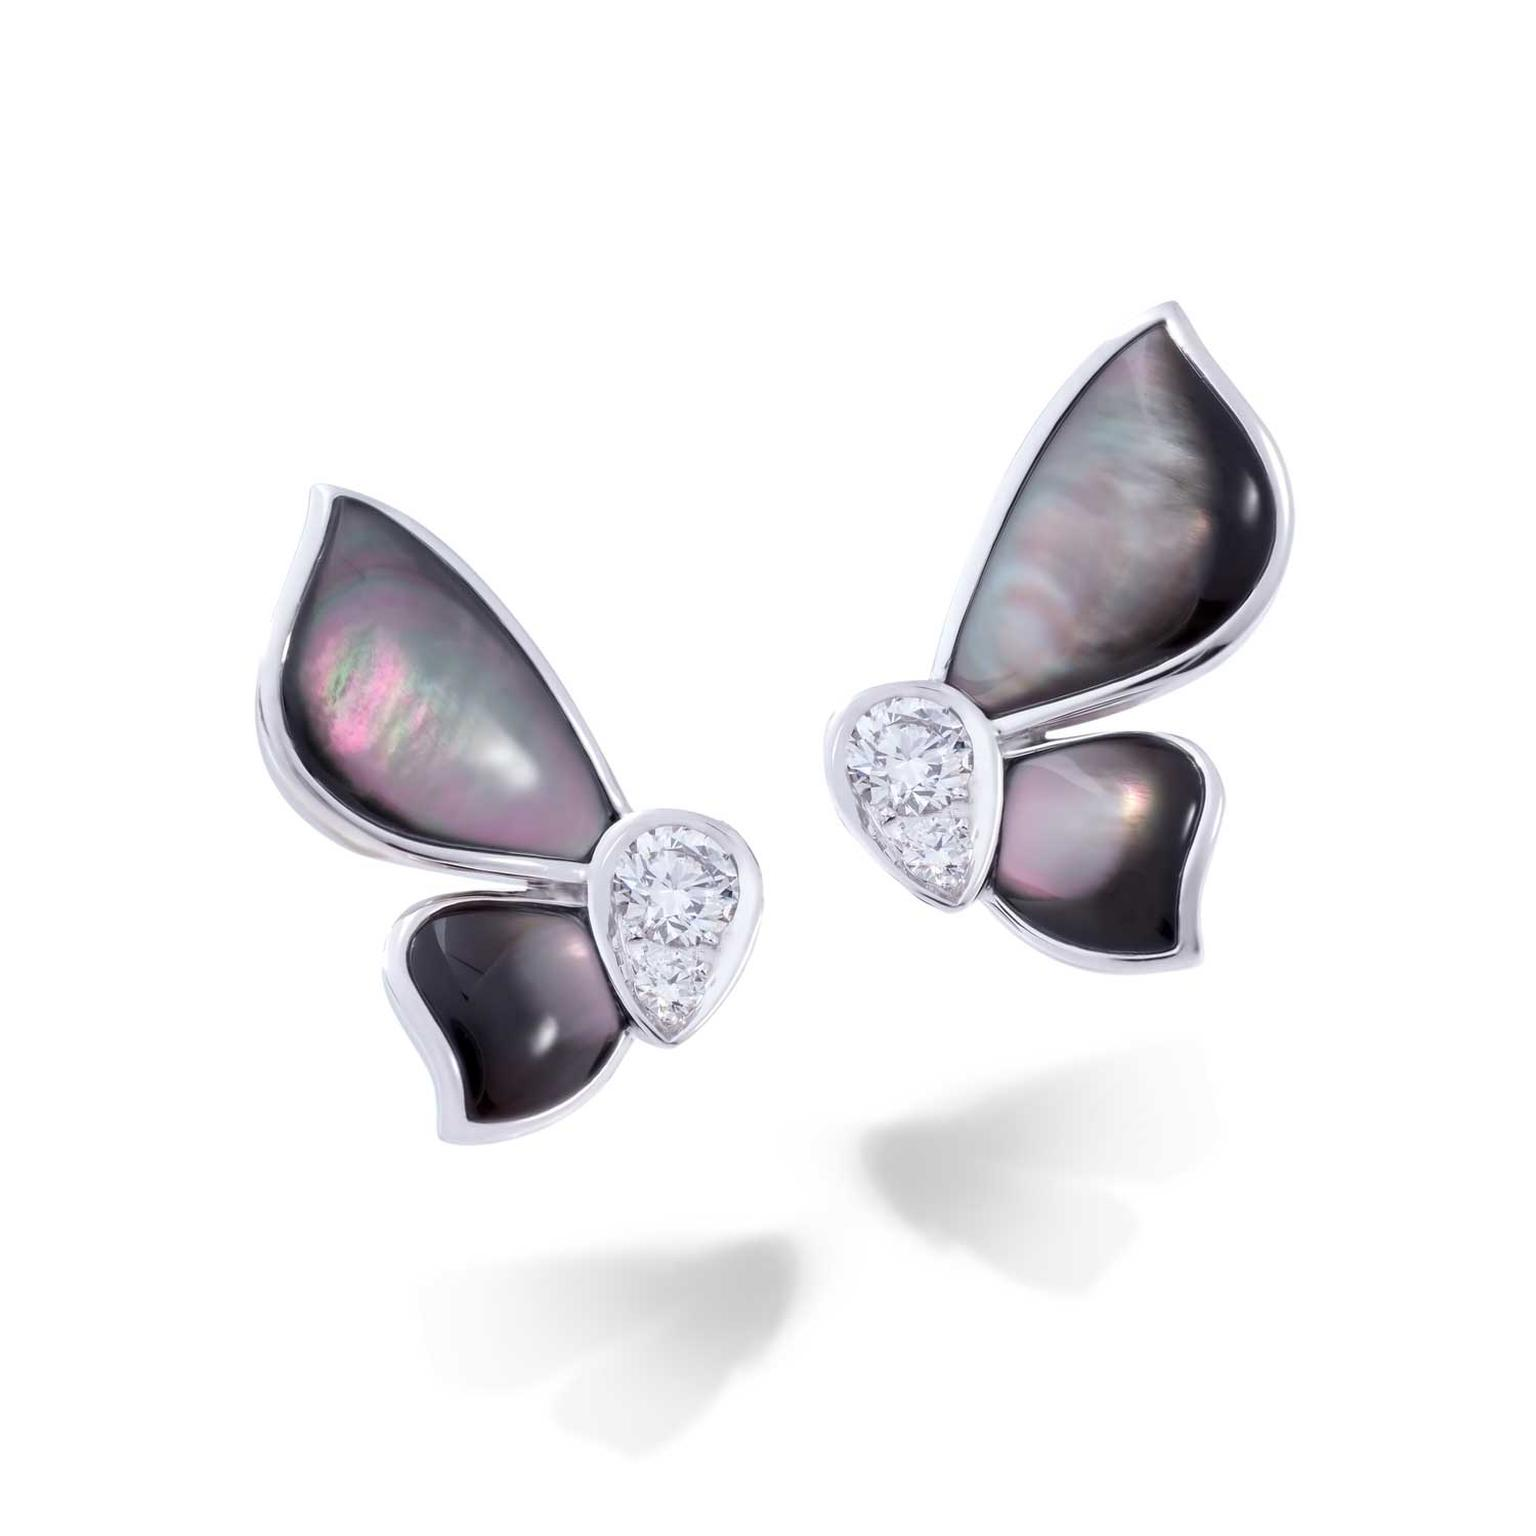 Stenzhorn Day and Night mother of pearl earrings